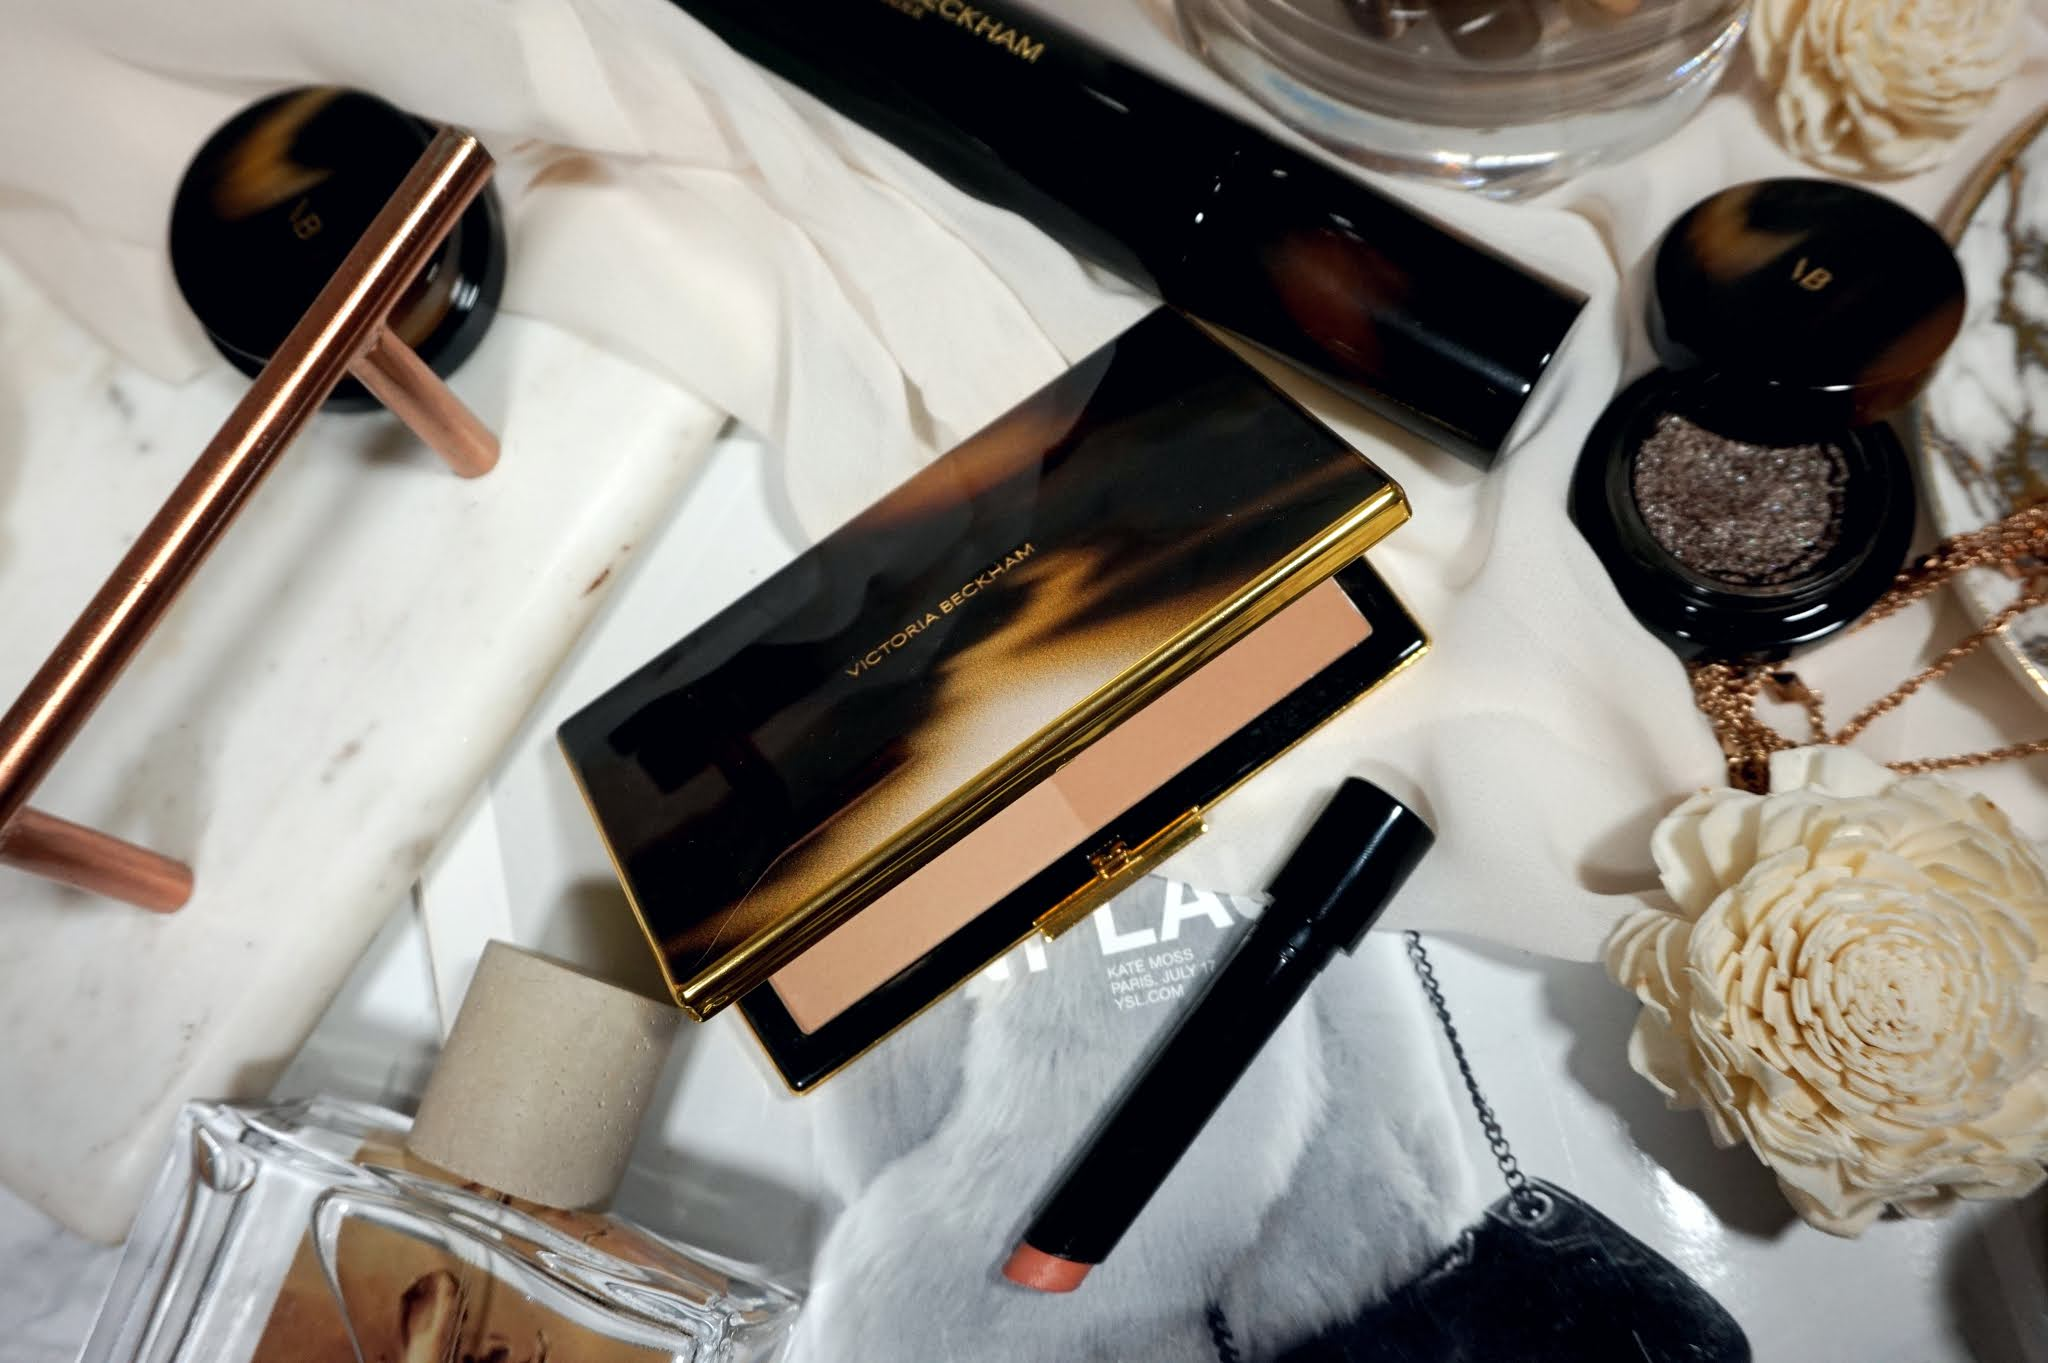 Victoria Beckham Beauty Matte Bronzing Brick Review and Swatches